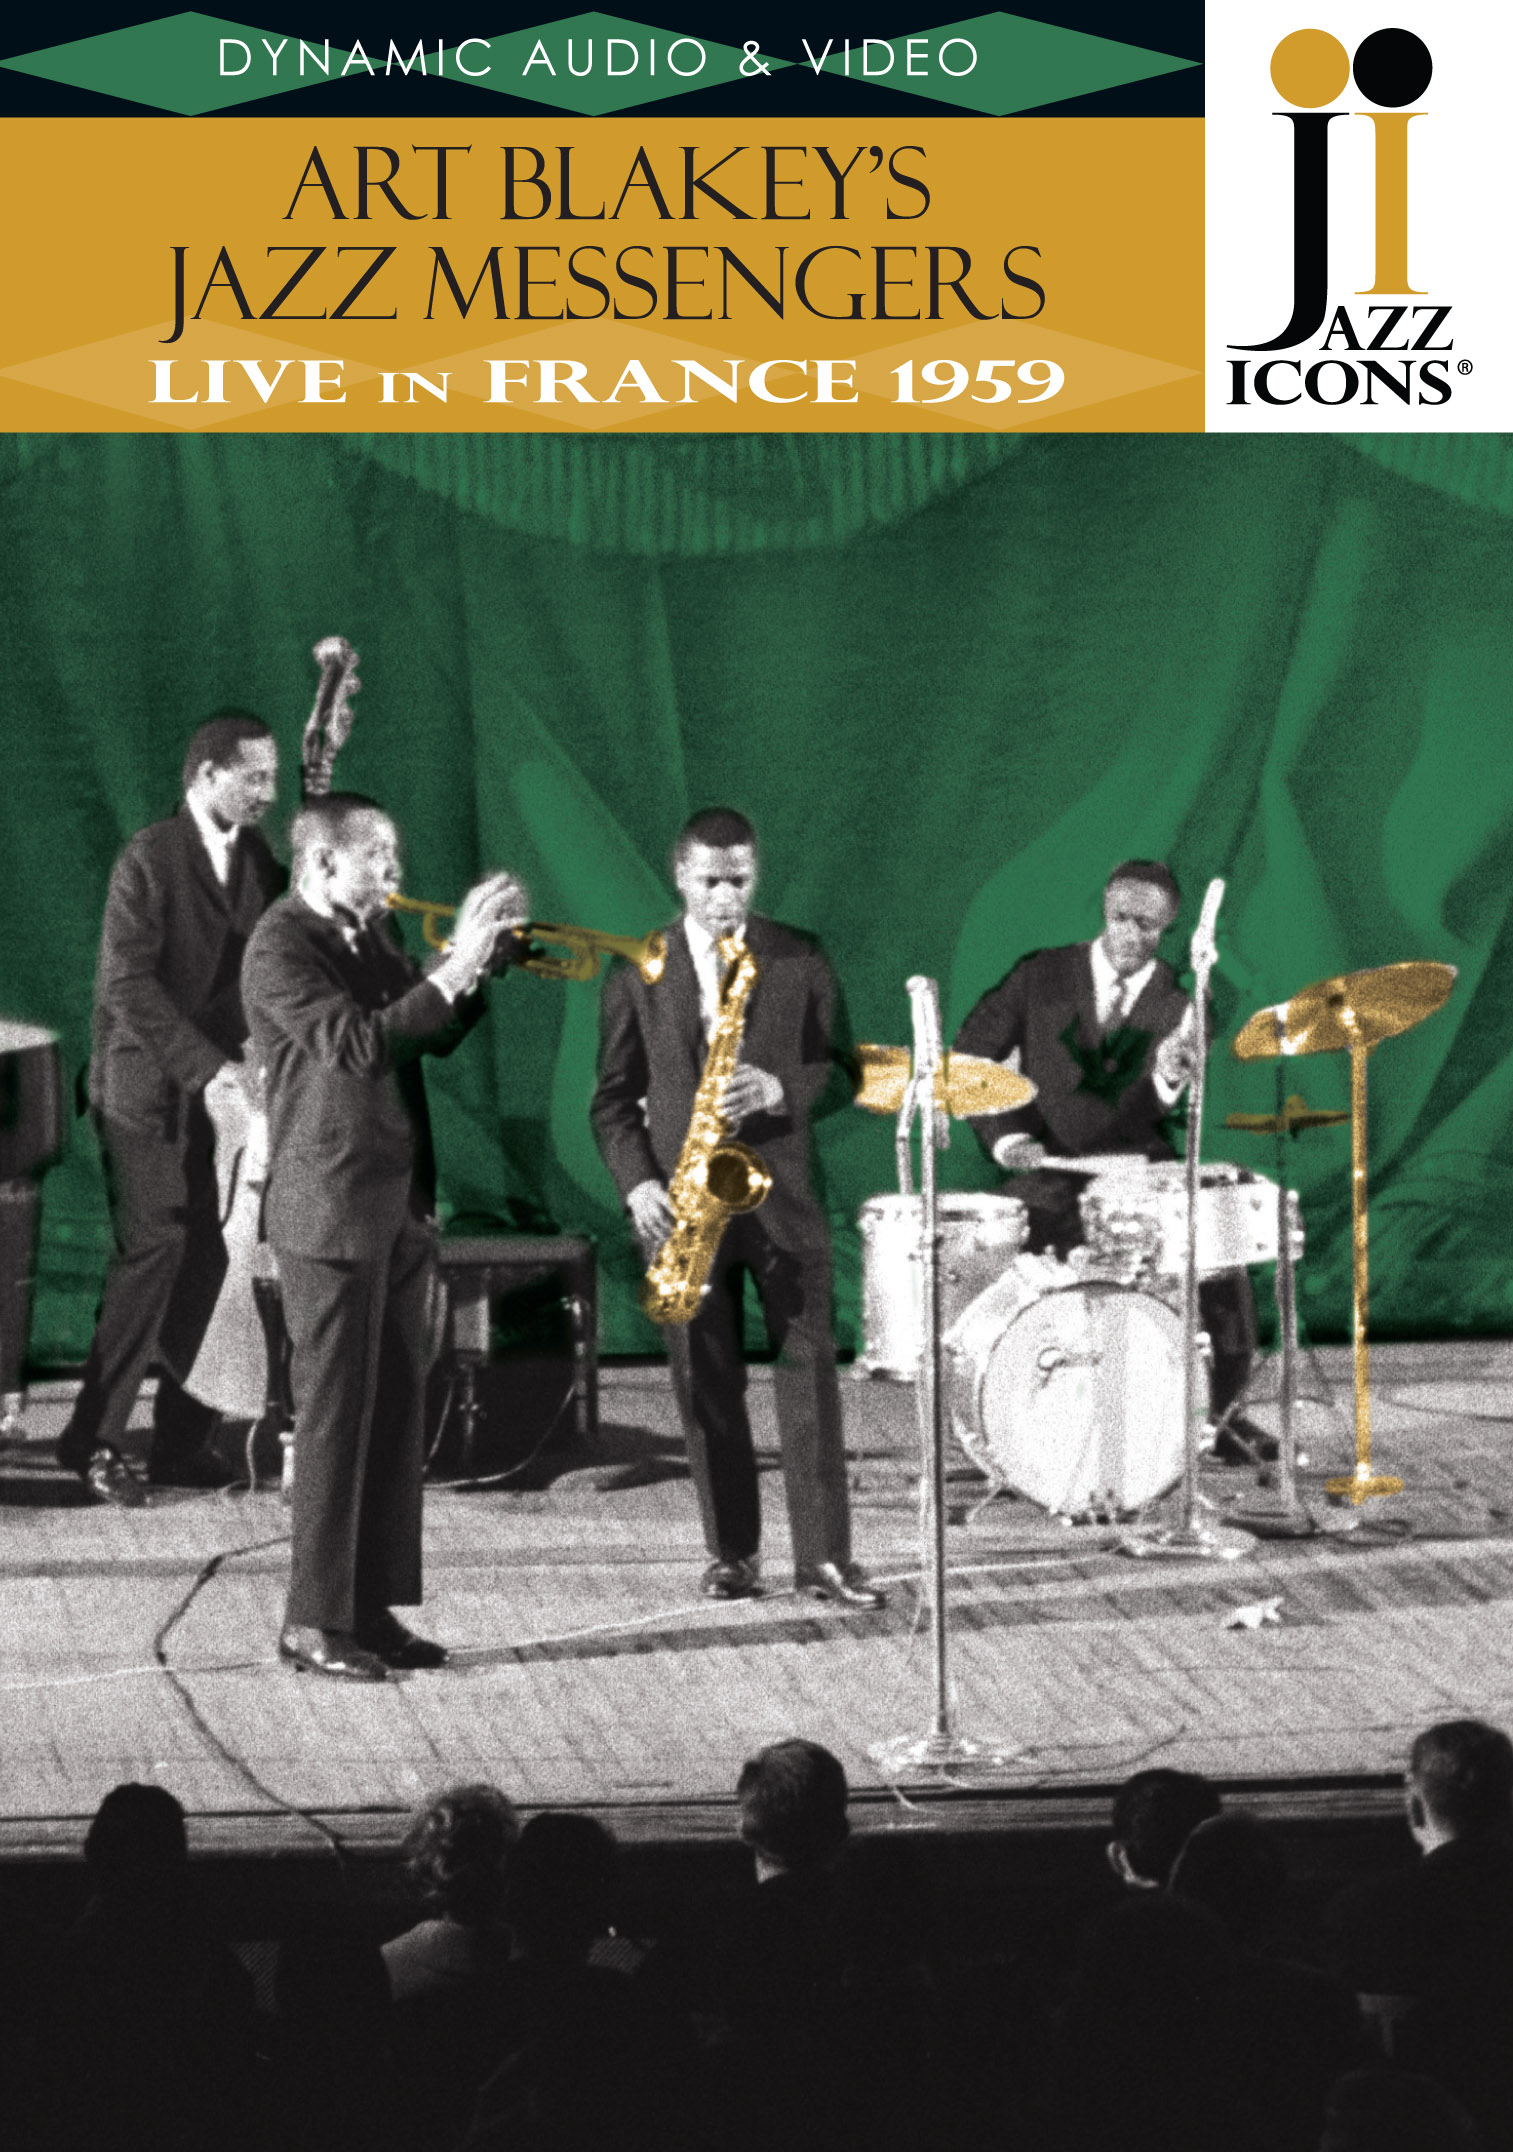 Jazz Icons: Art Blakey's Jazz Messengers - Live in France 1959